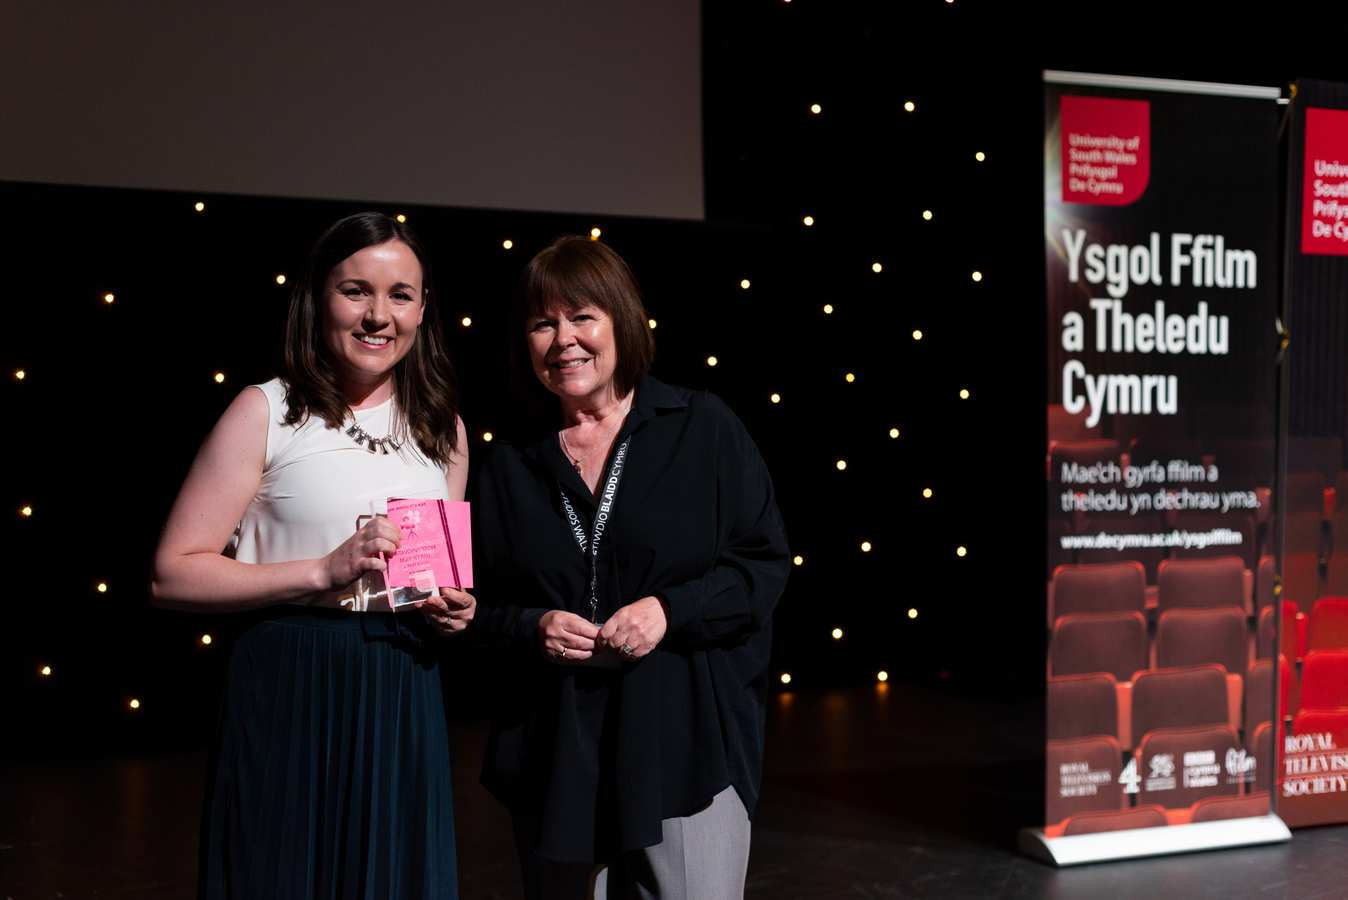 Meadows Primary School - Most Innovative 11-15 with Allison Dowzell Managing Director of Screen Alliance Wales.